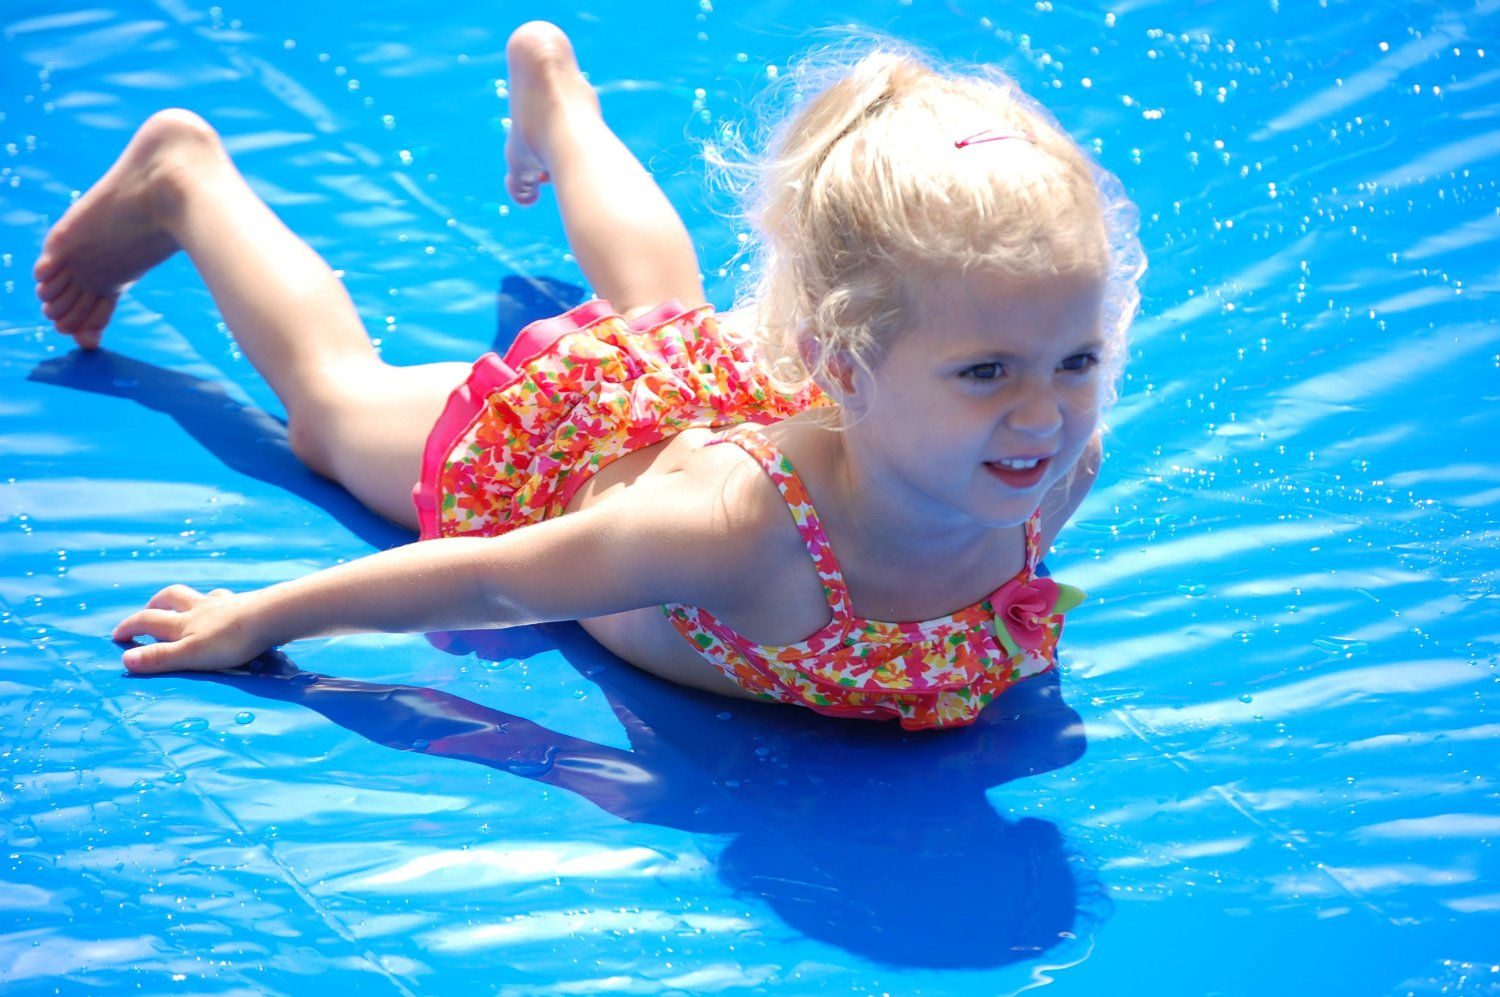 How to Make a Homemade DIY Water Slide for Kids